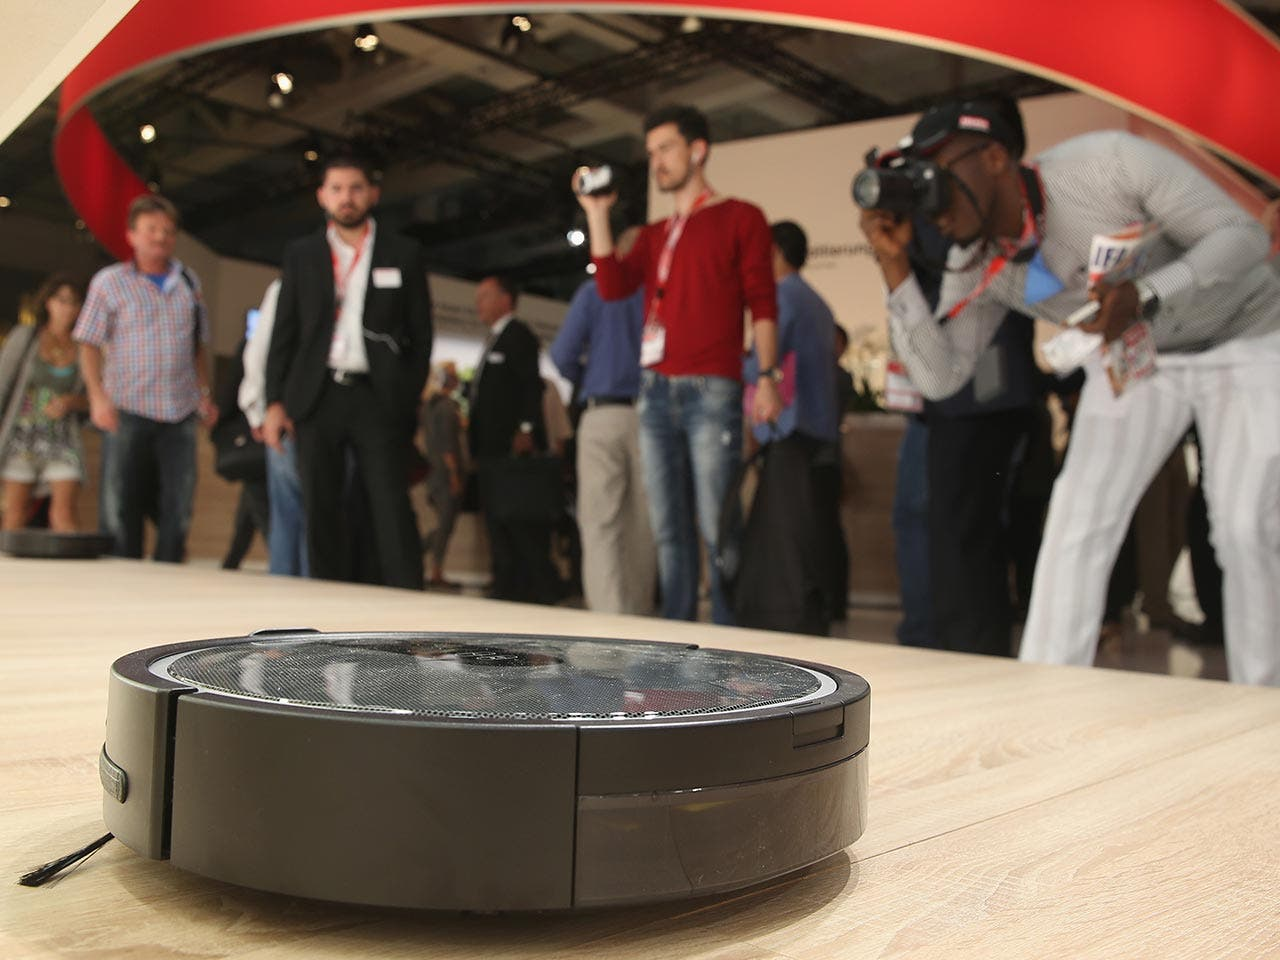 Miele Scout RX1 Robotic Vacuum | Sean Gallup/Getty Images